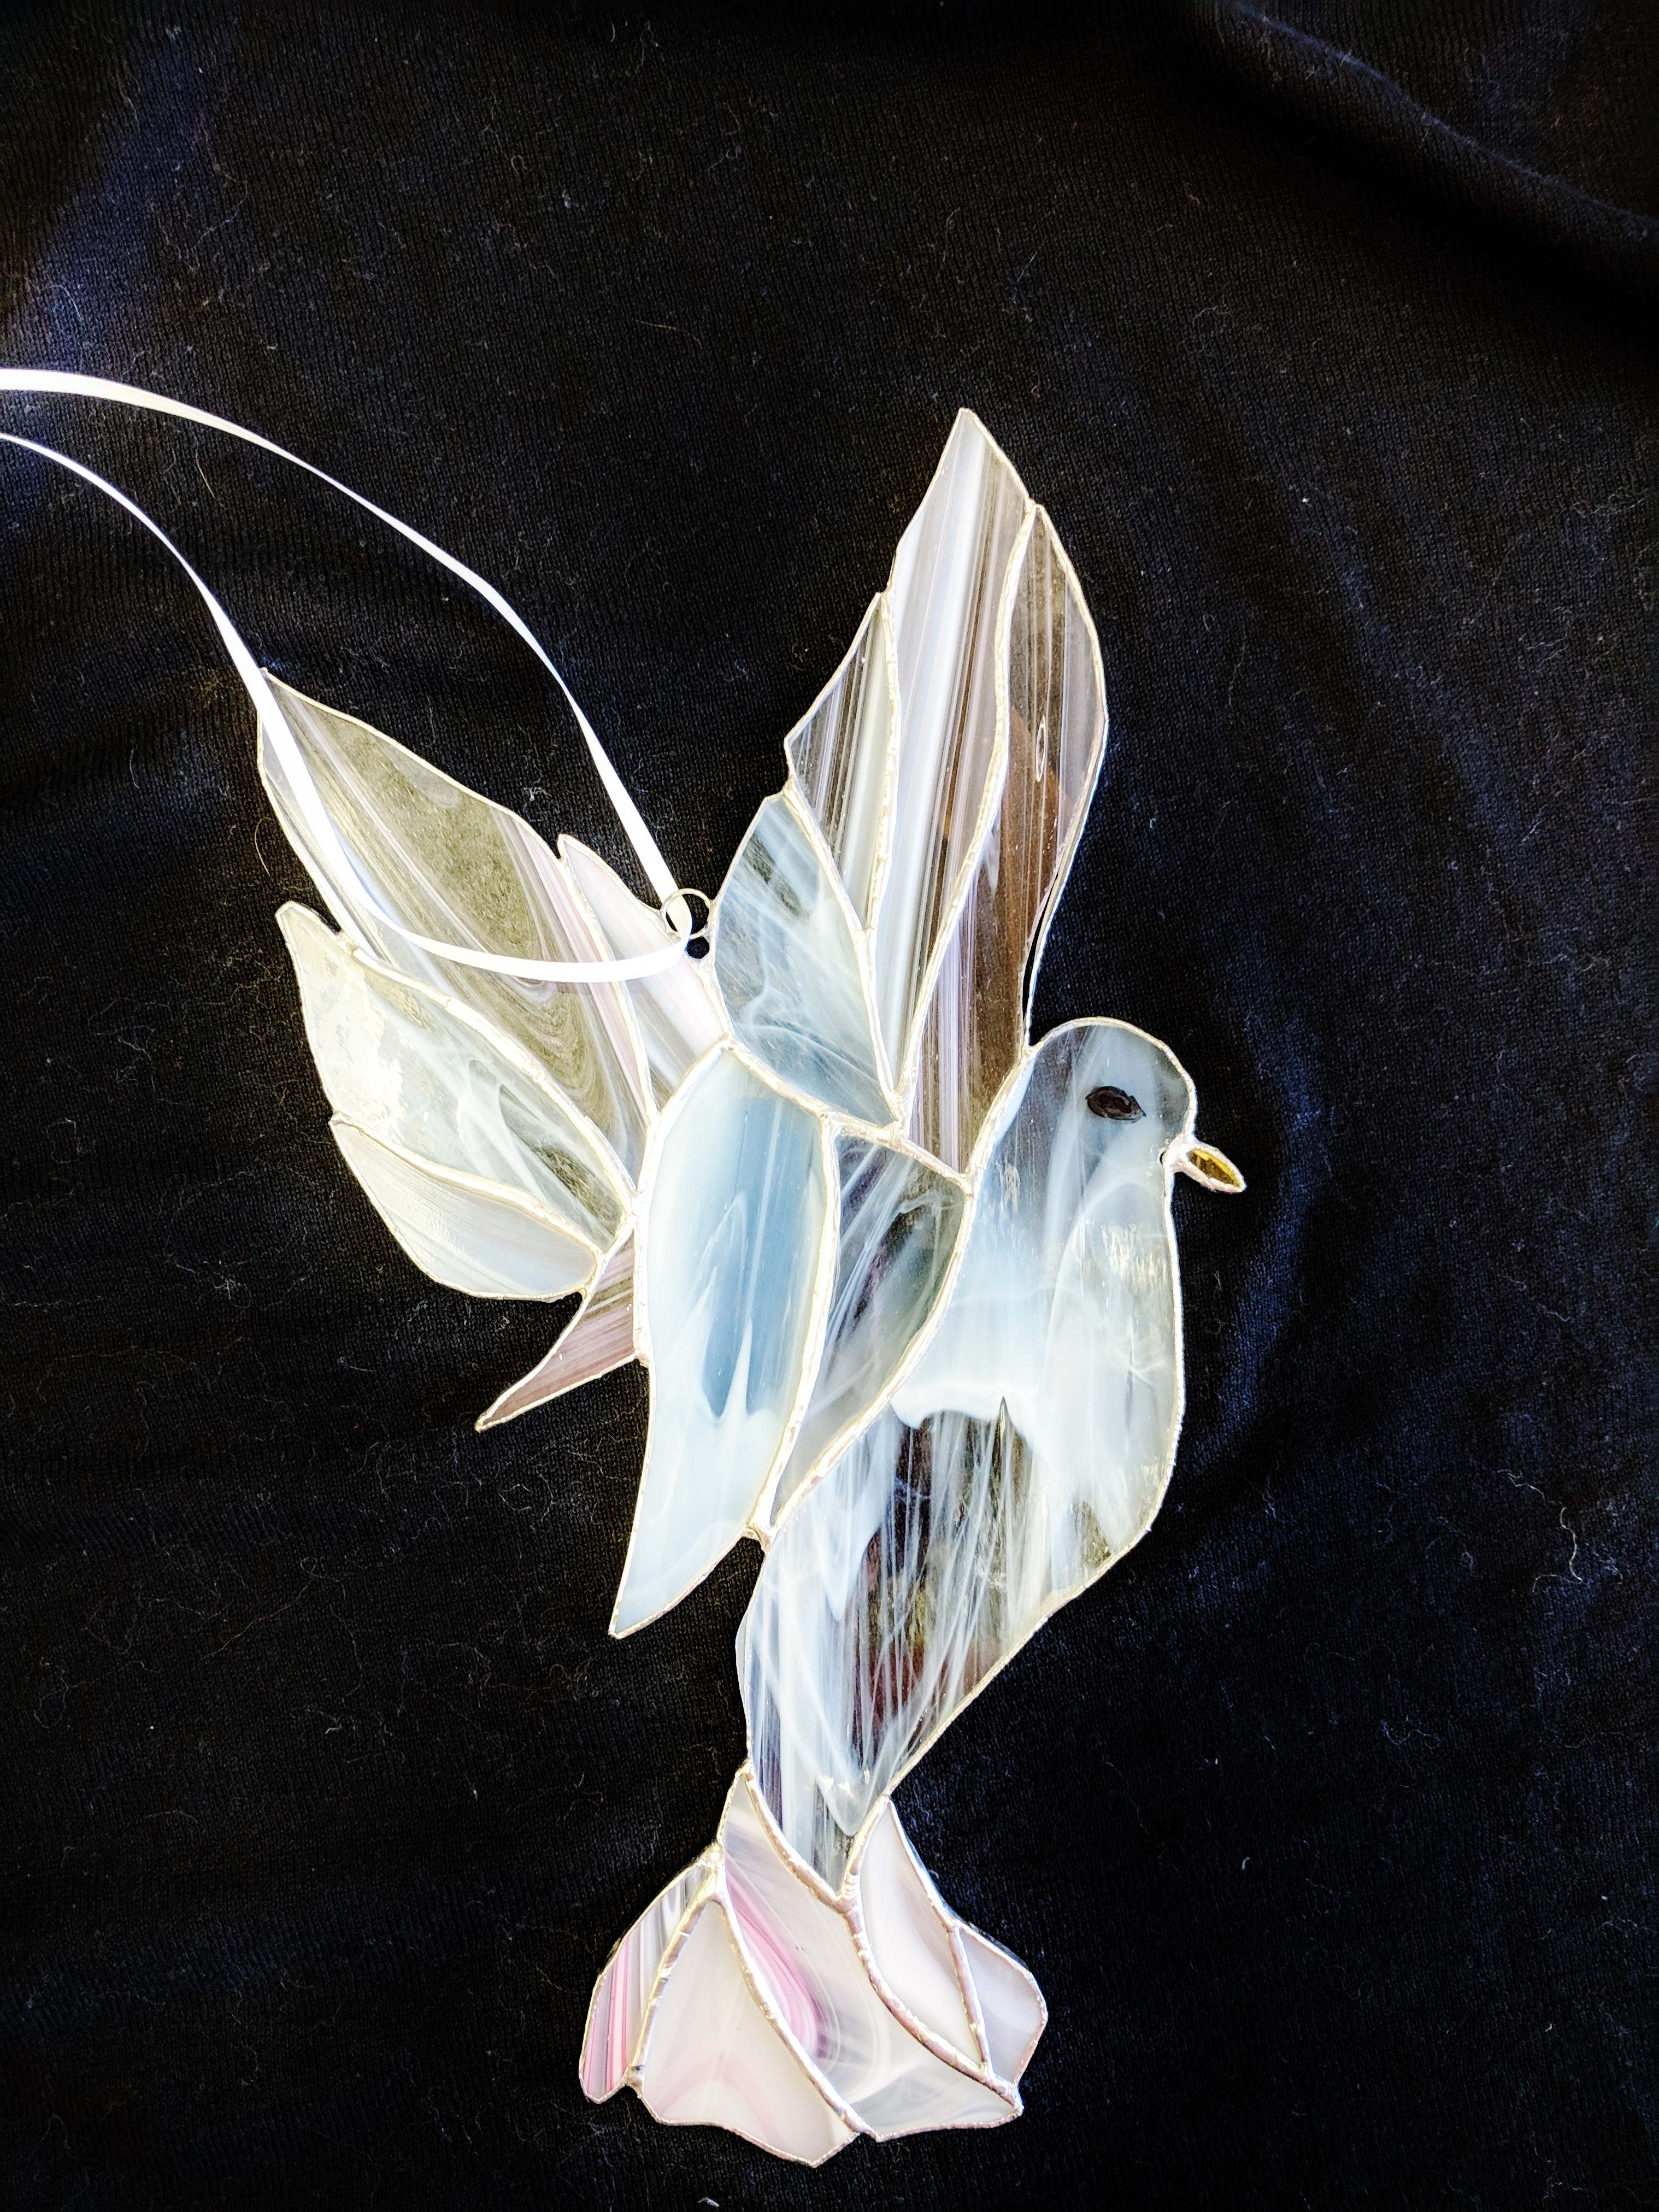 Stained Glass Dove by Diane Wara of Oshkosh, WI